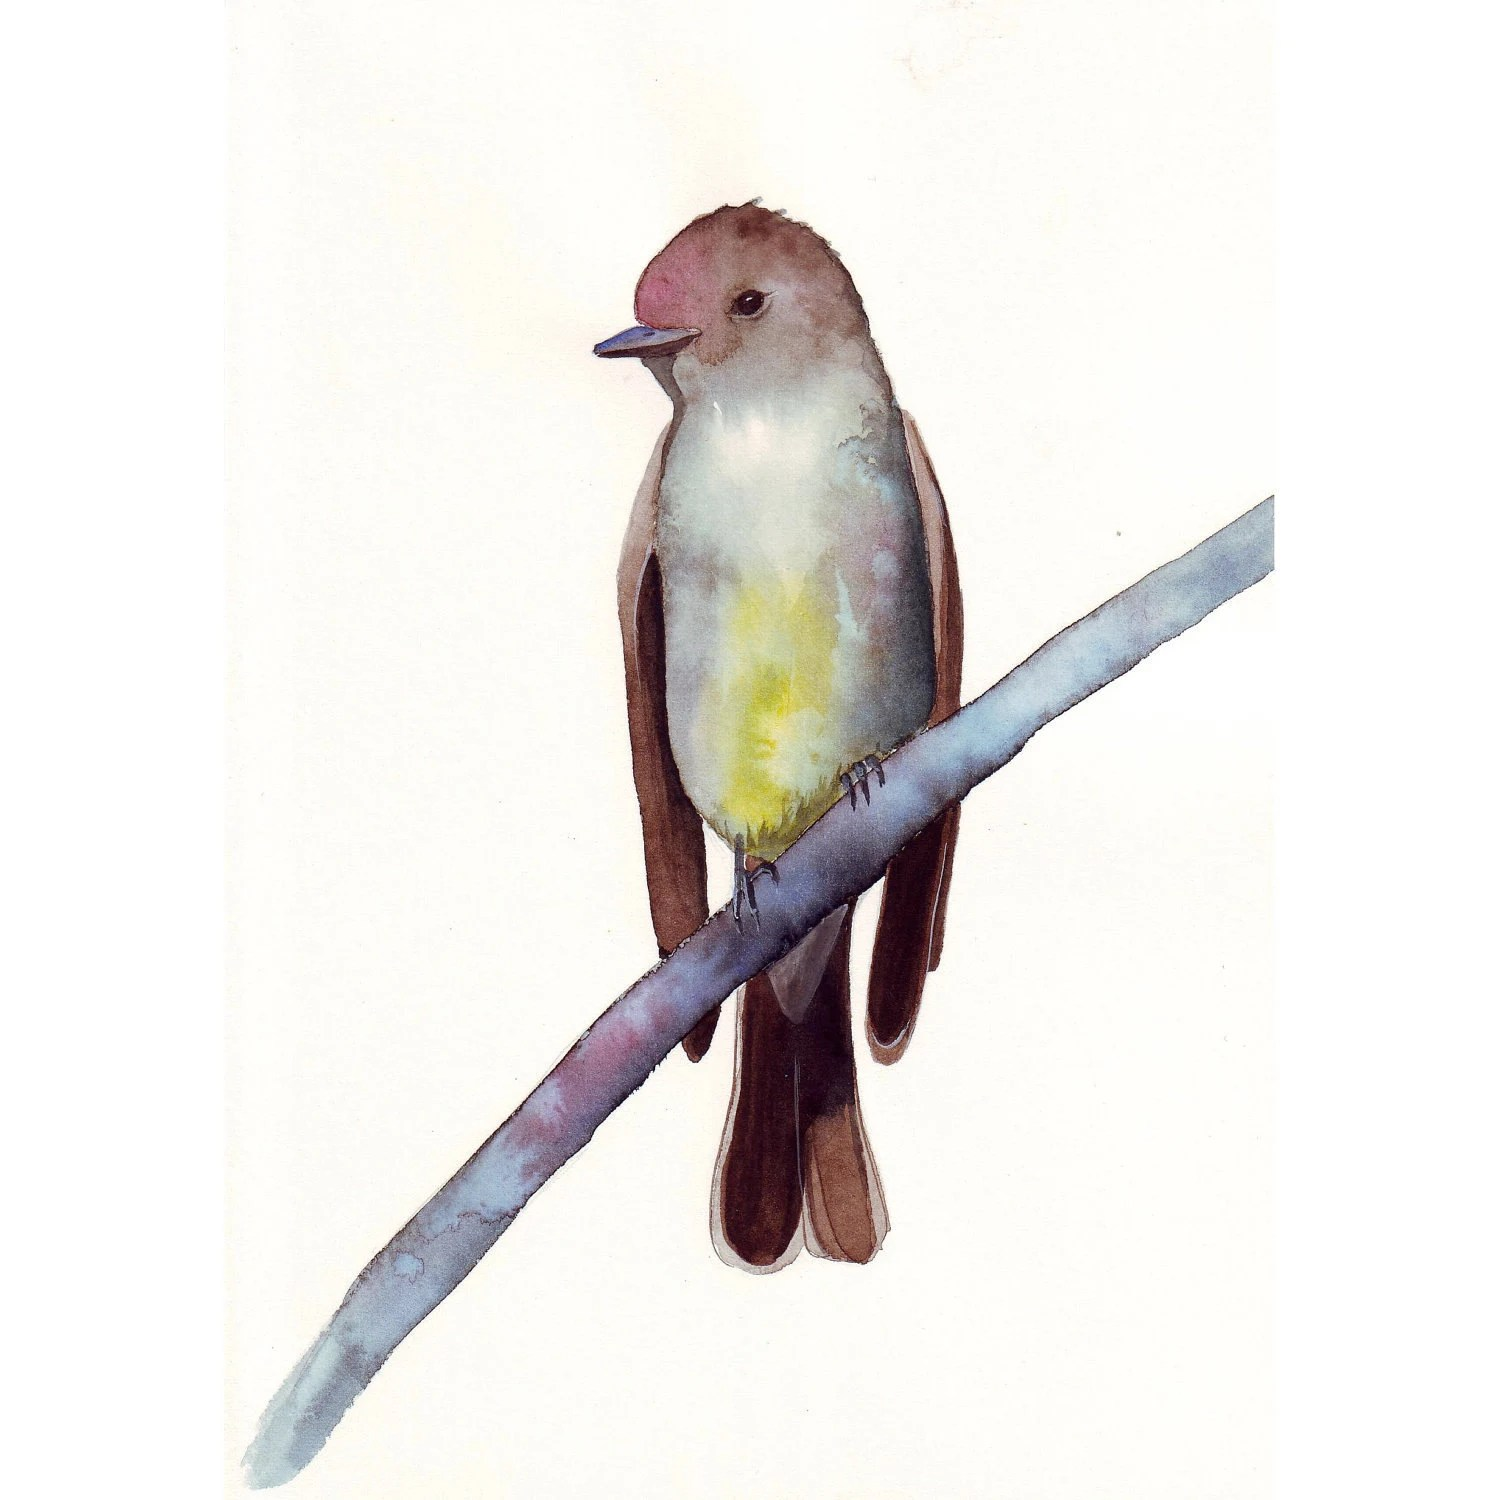 Fly Catcher Painting - bird art nature wildlife art - Print of watercolor painting - 5 by 7 print - Splodgepodge